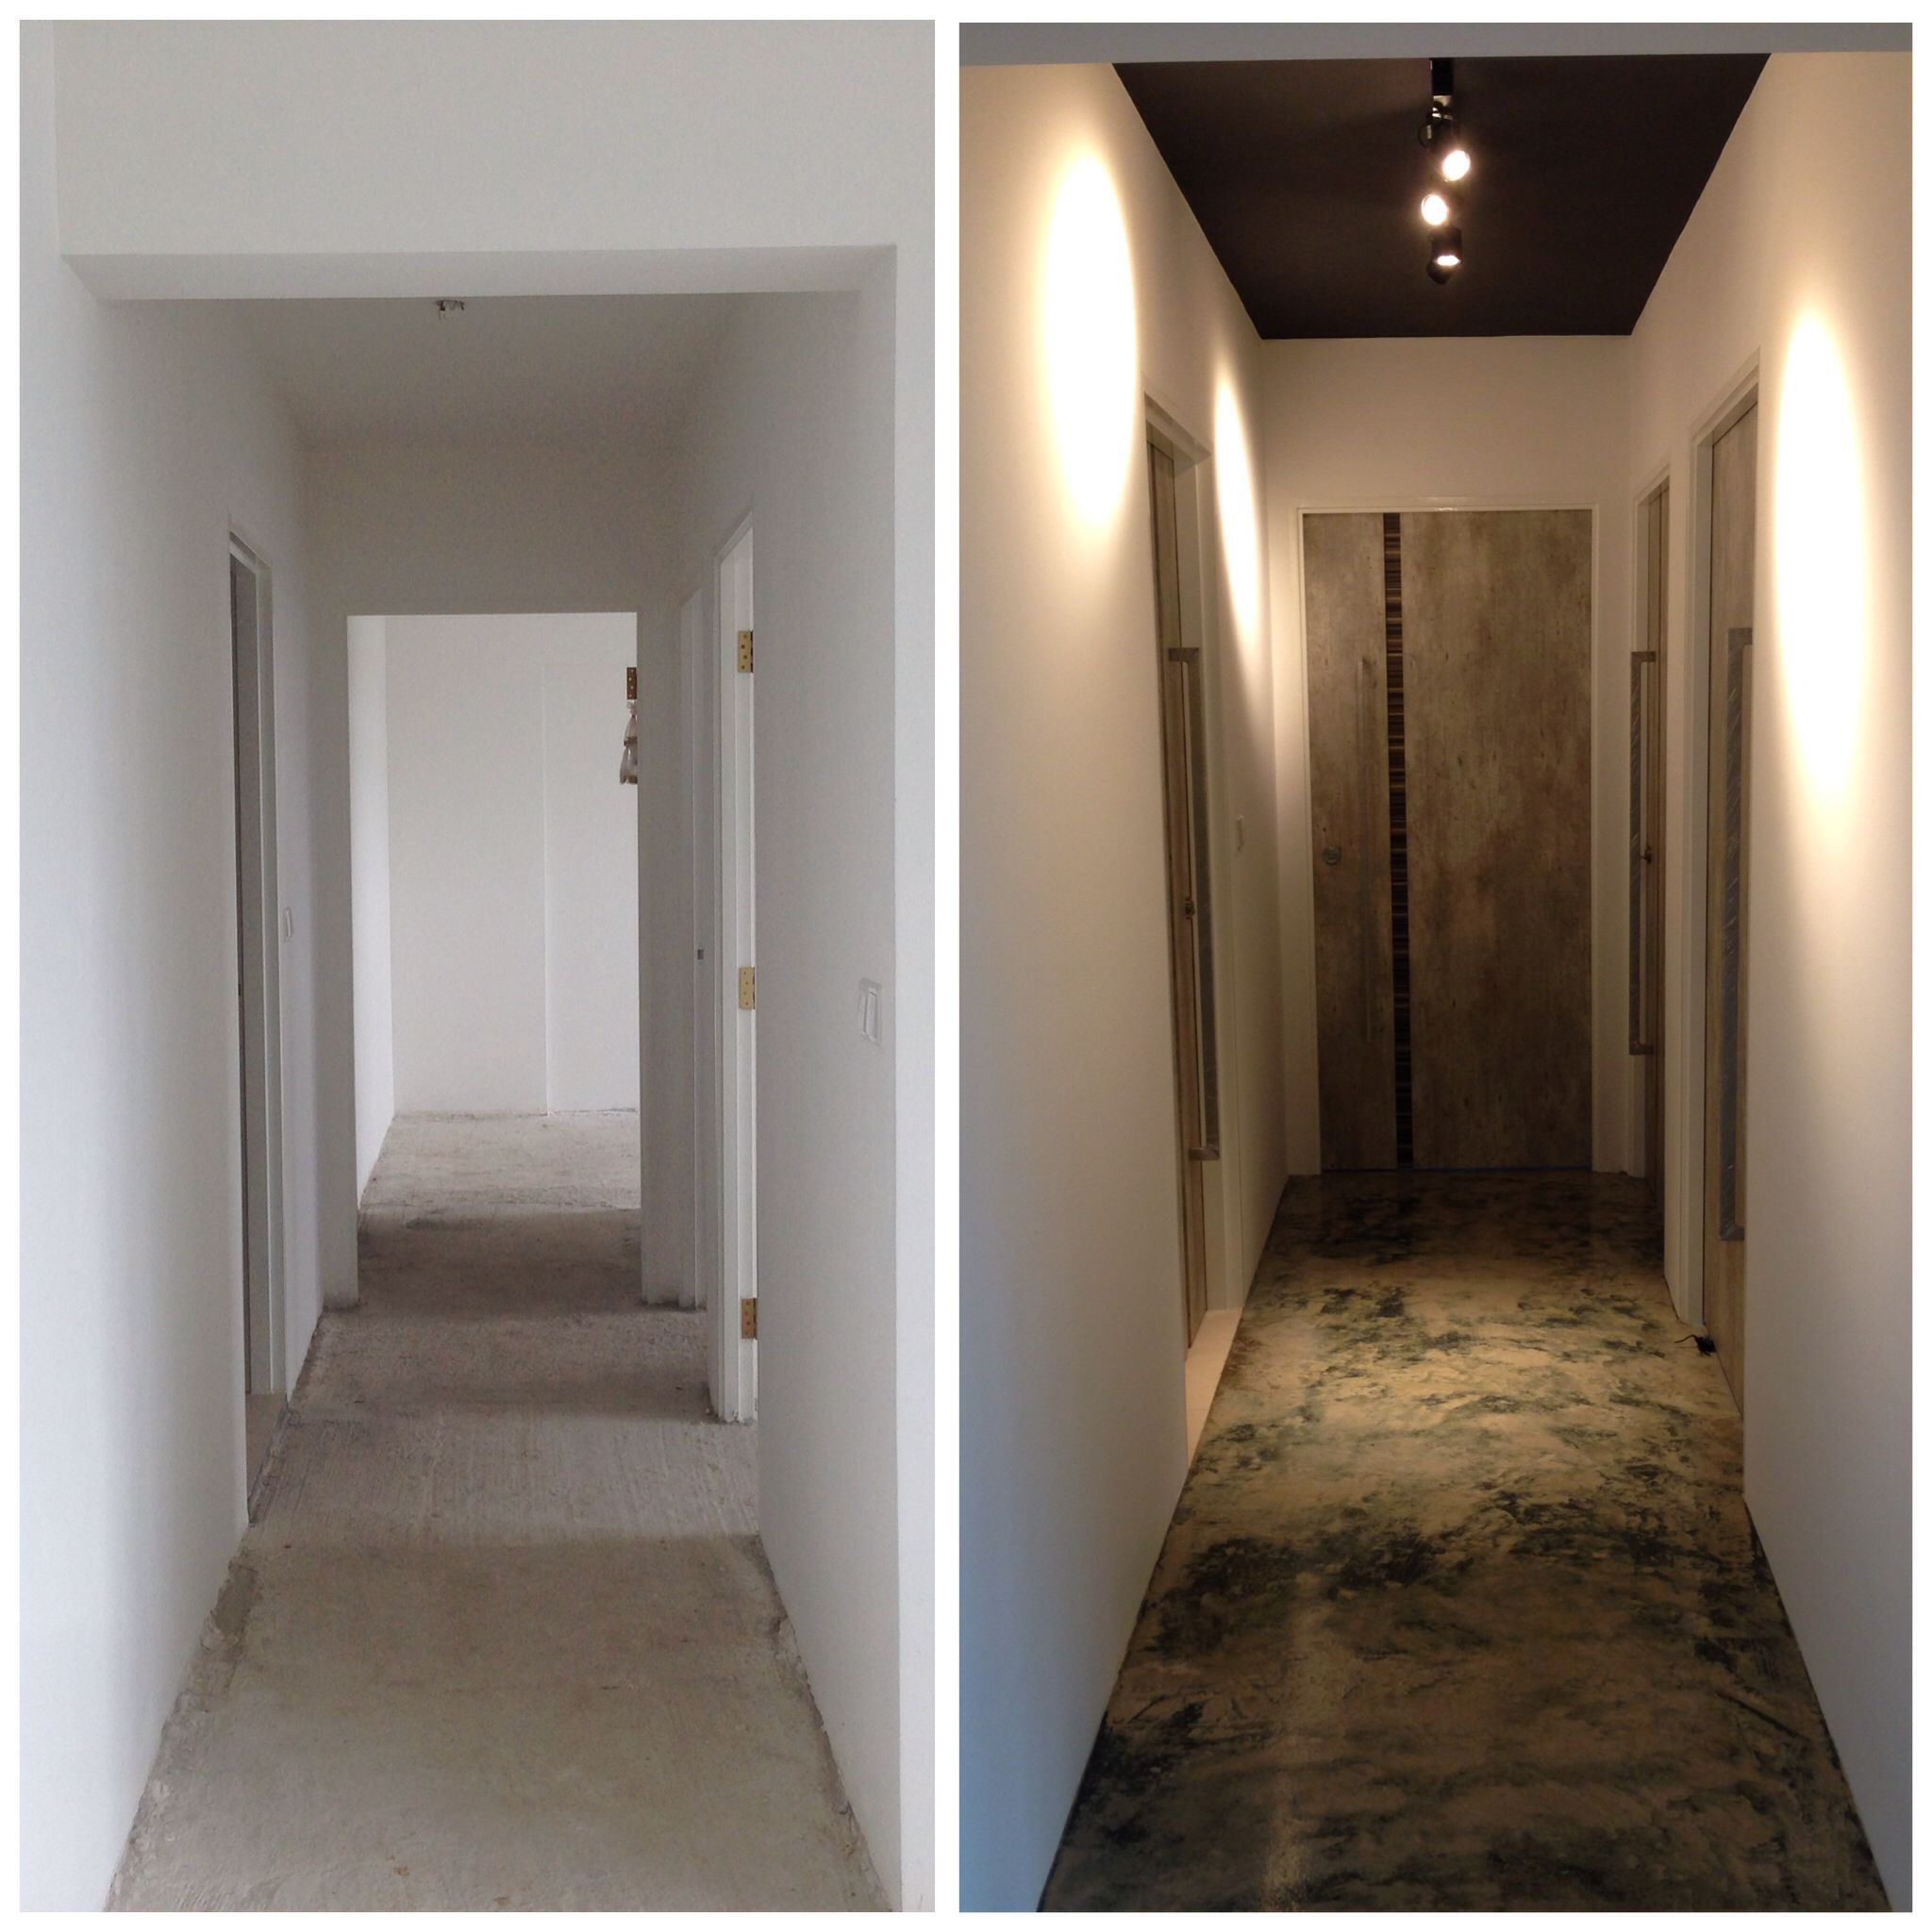 Hdb Home Design Ideas: Before And After Renovation Of Corridor By #intradesign